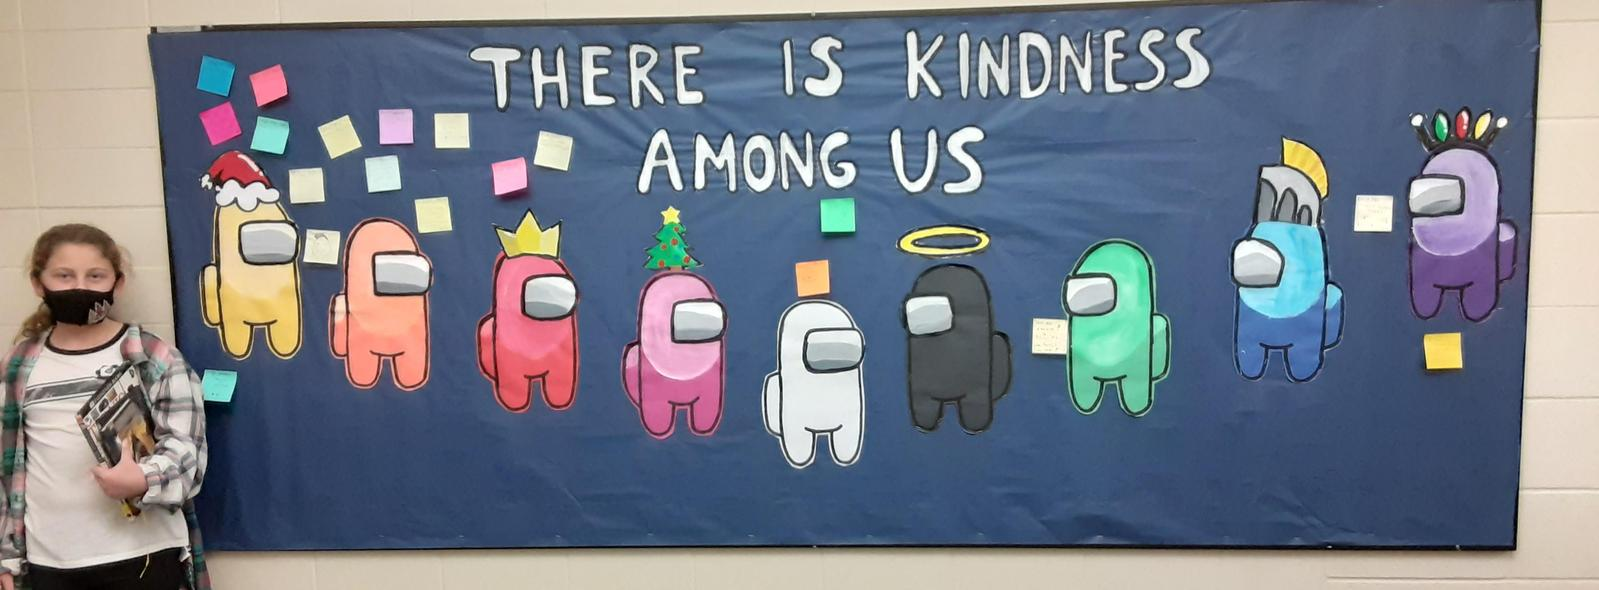 girl standing next to board that says There is Kindness Among Us